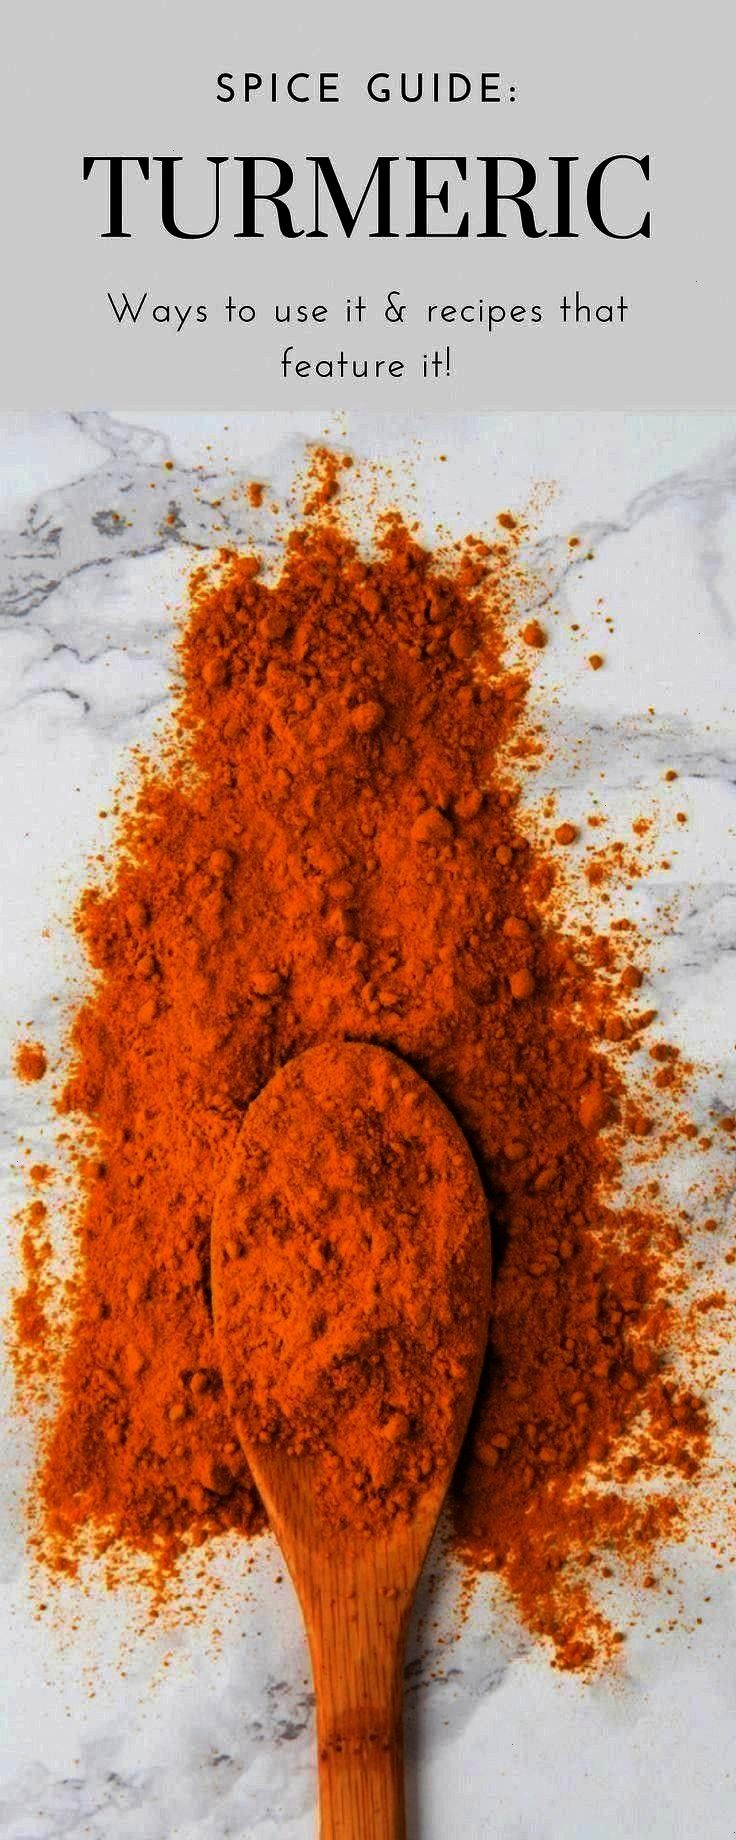 it is how to use it and recipes that feature it Turmeric Spice Guide what it is how to use it and recipes that feature it  Turmeric Spice Guide what it is how to use it a...